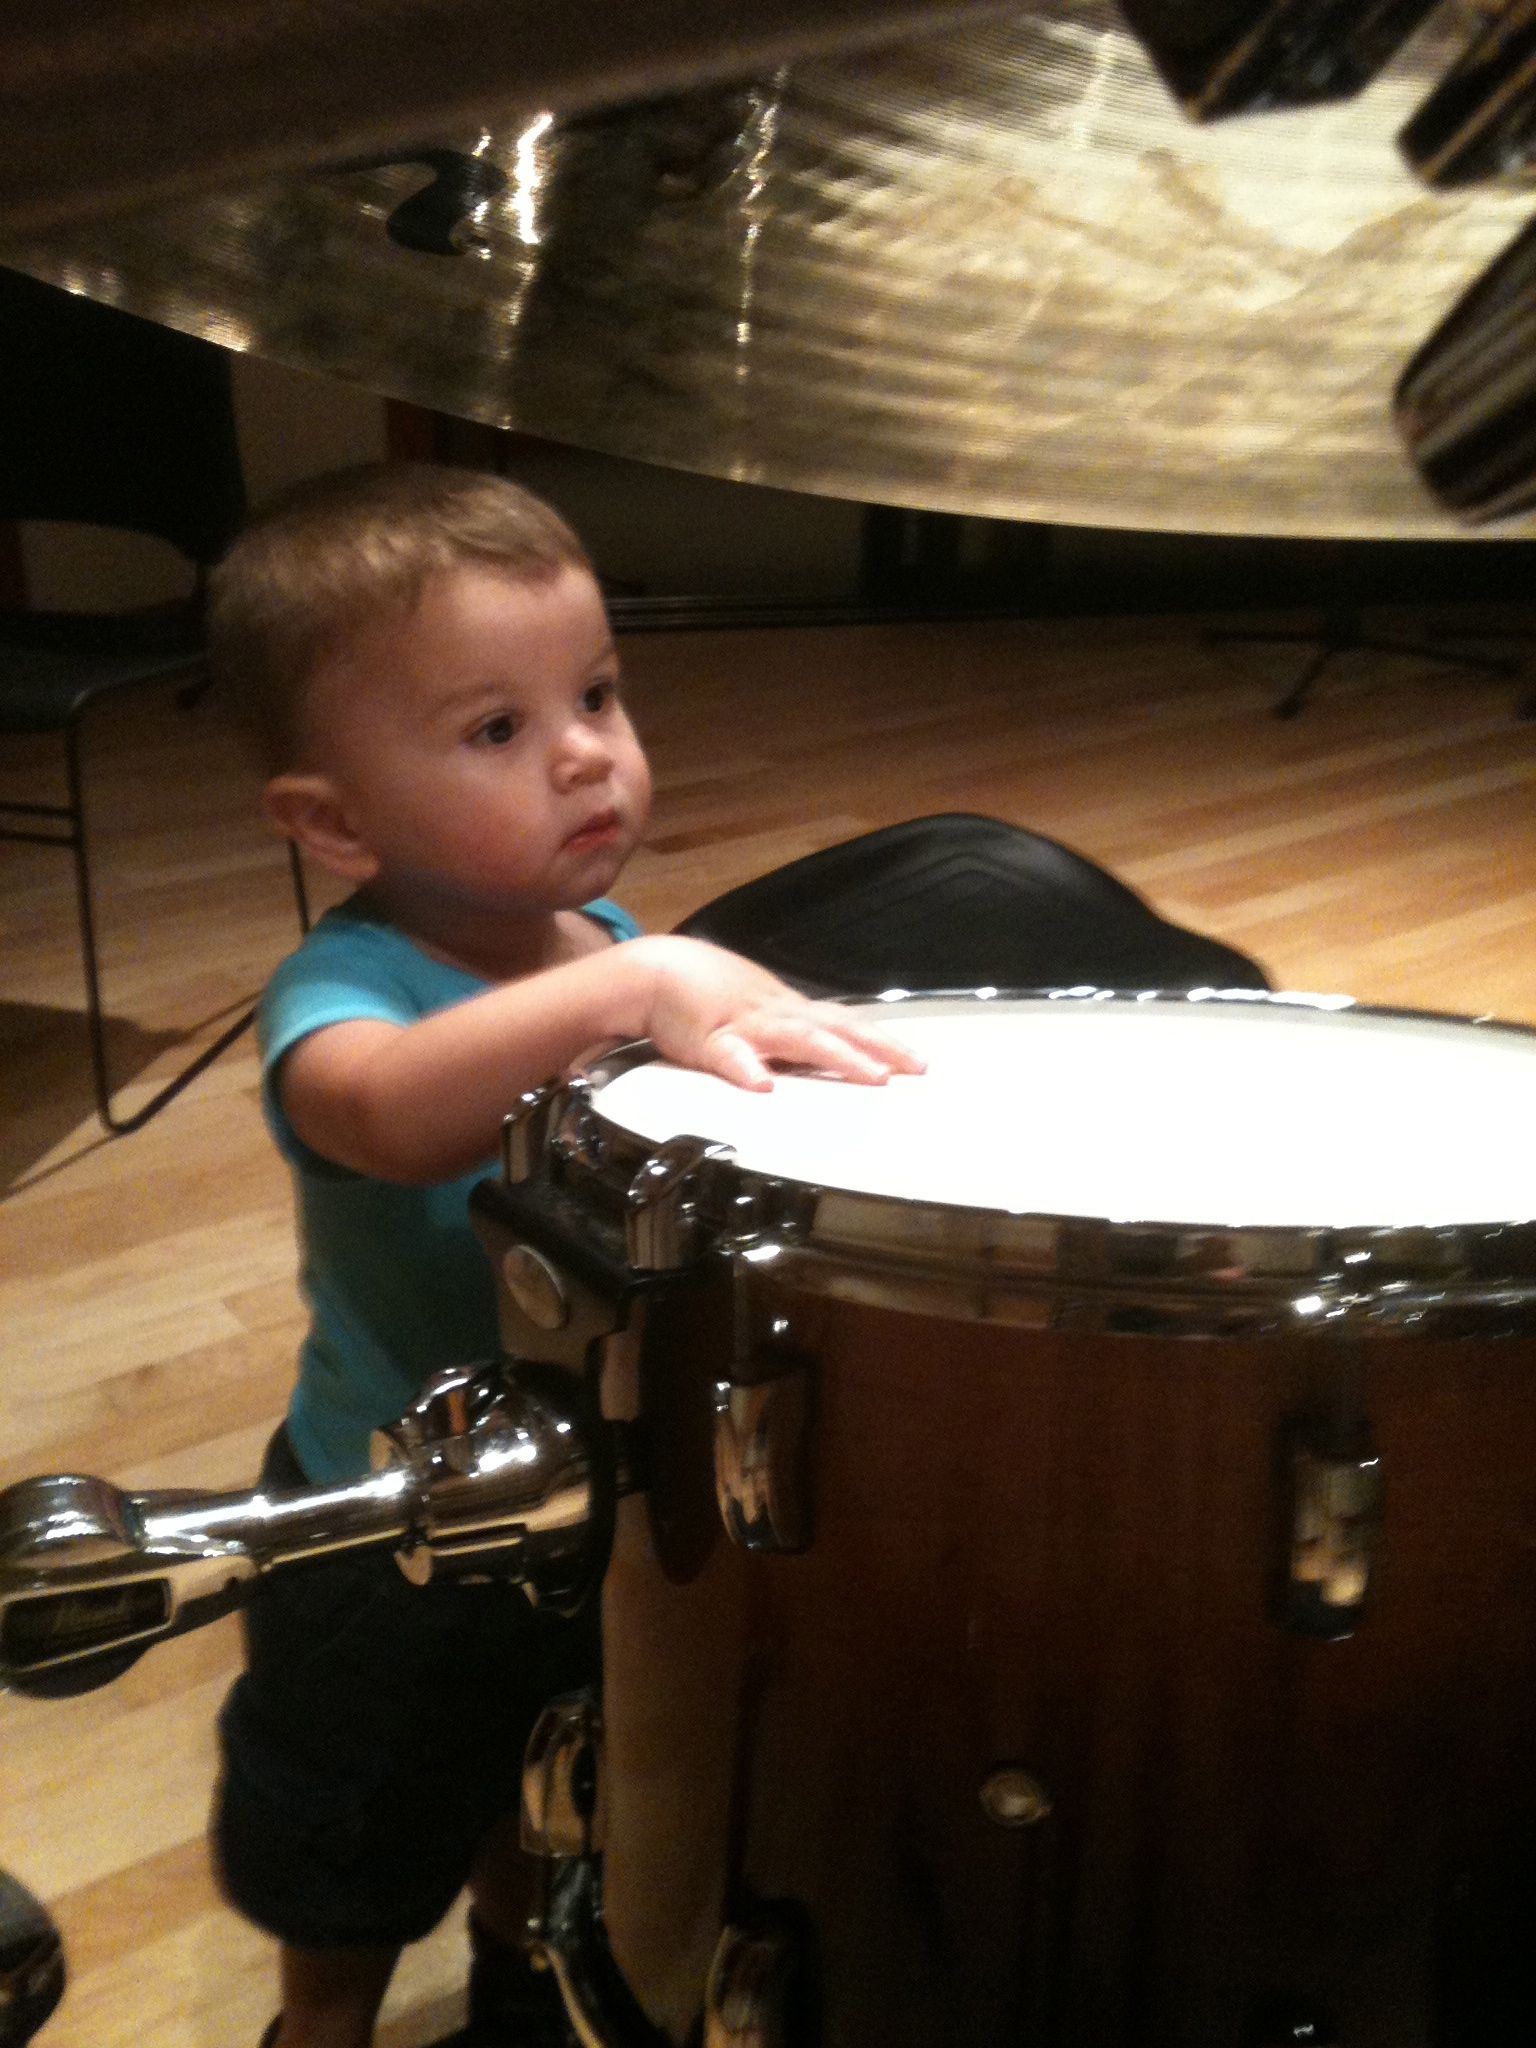 My little drummer boy